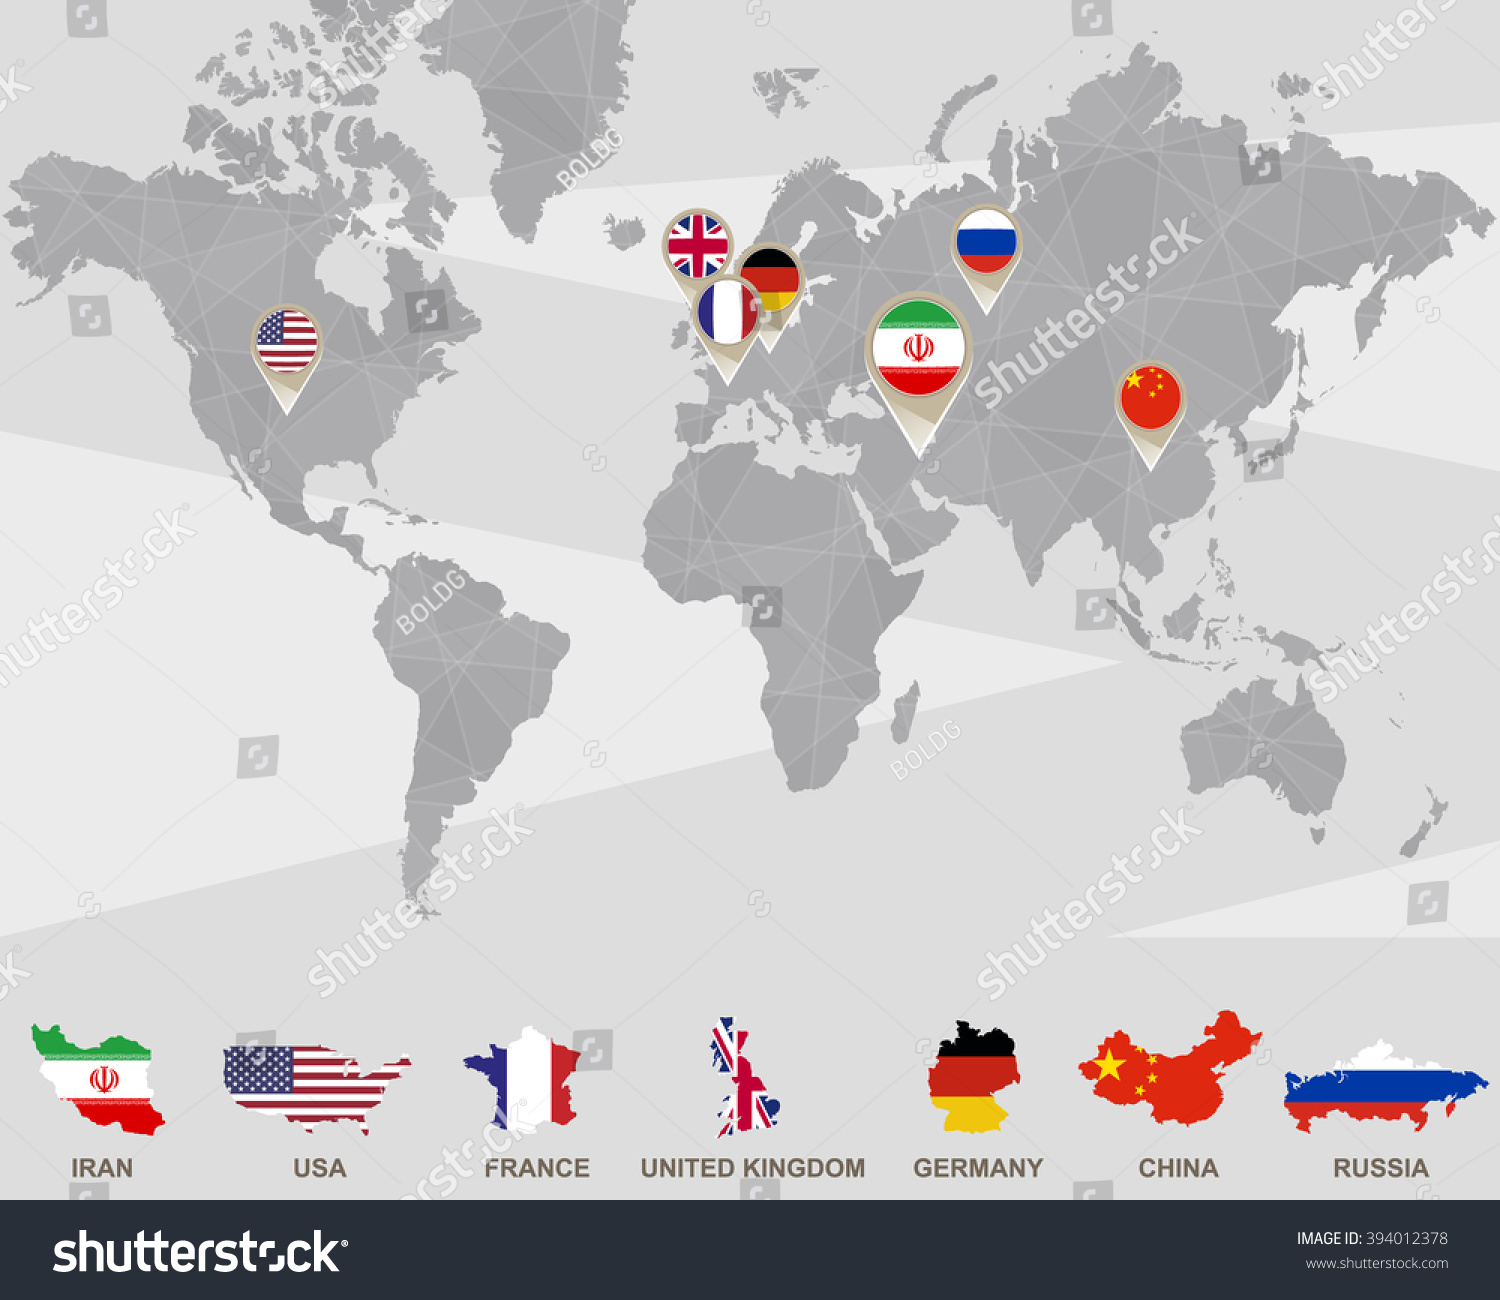 World map iran usa france uk stock illustration 394012378 world map iran usa france uk stock illustration 394012378 shutterstock sciox Images